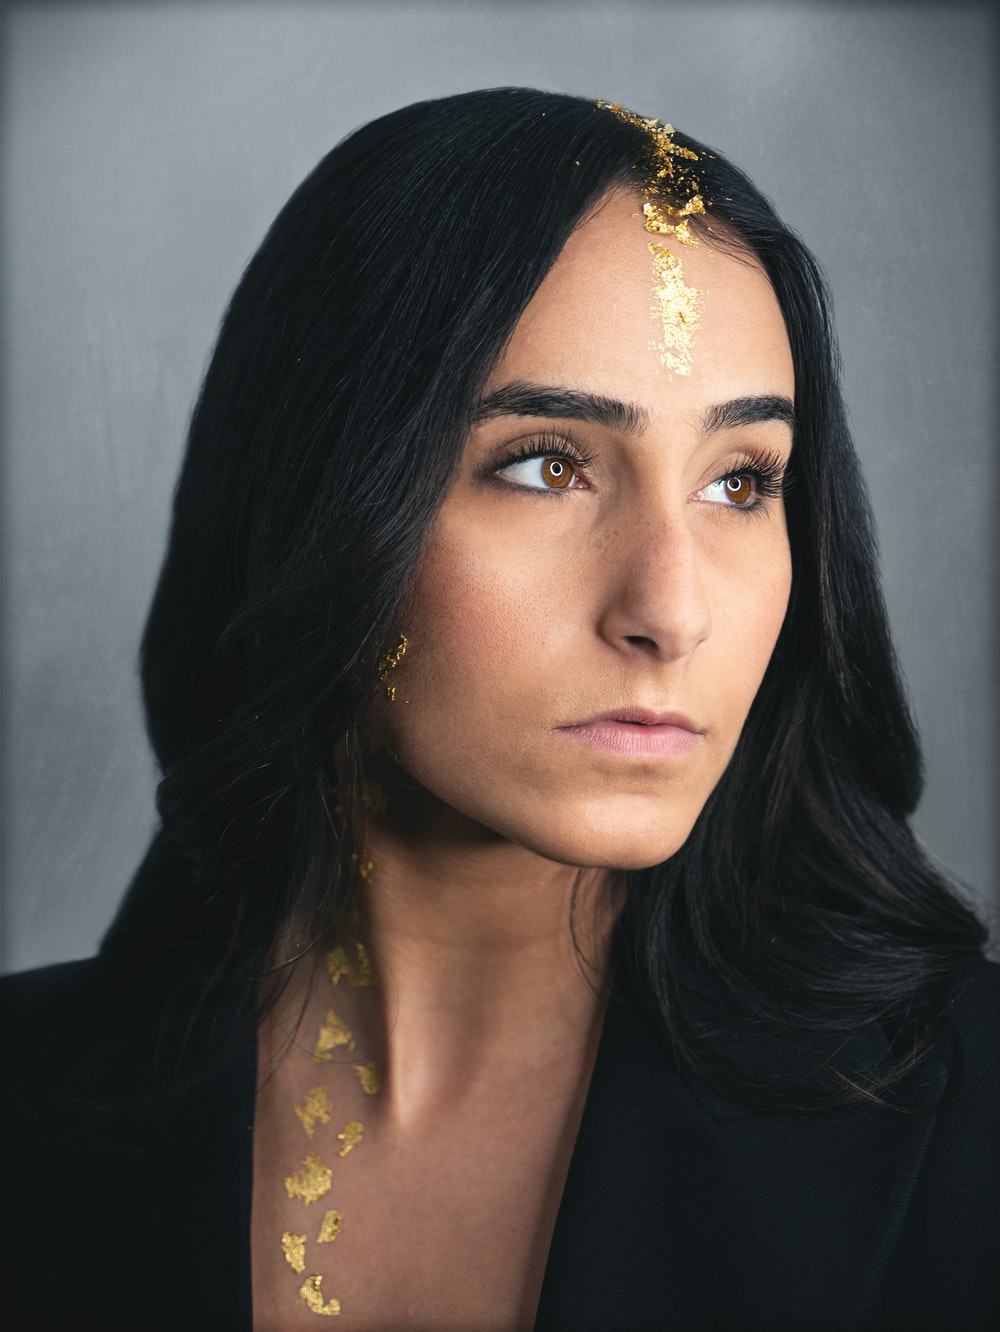 woman in black shirt with gold necklace